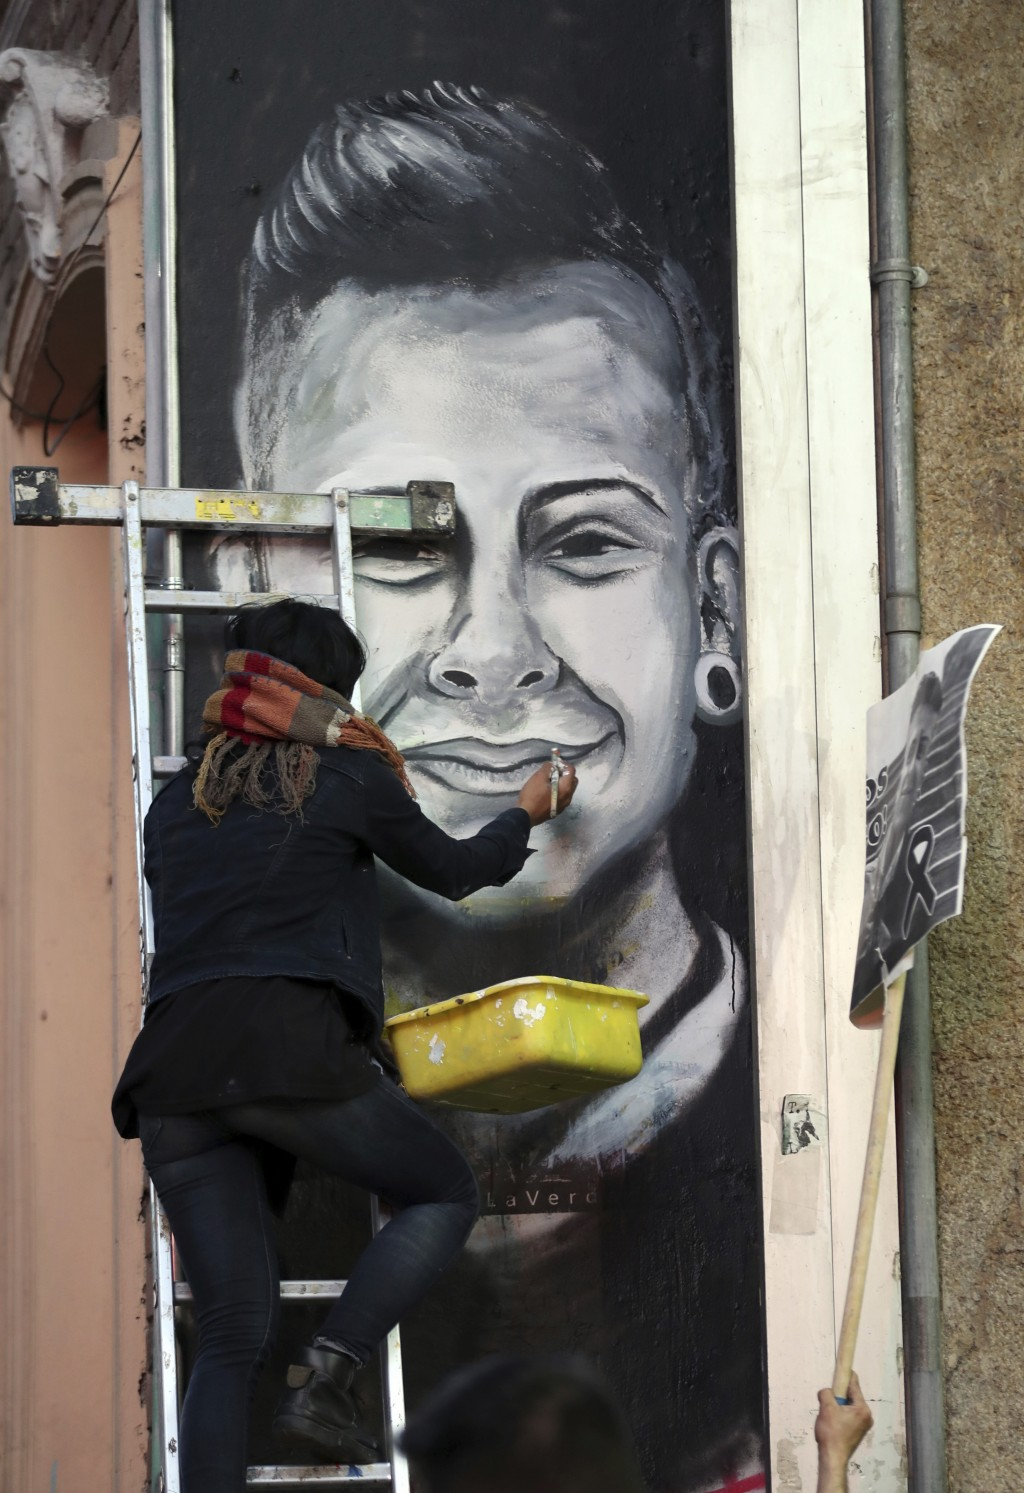 A demonstrator paints a mural with the likeness of Dilan Cruz who was injured during clashes between anti-government protesters and police, during a m...